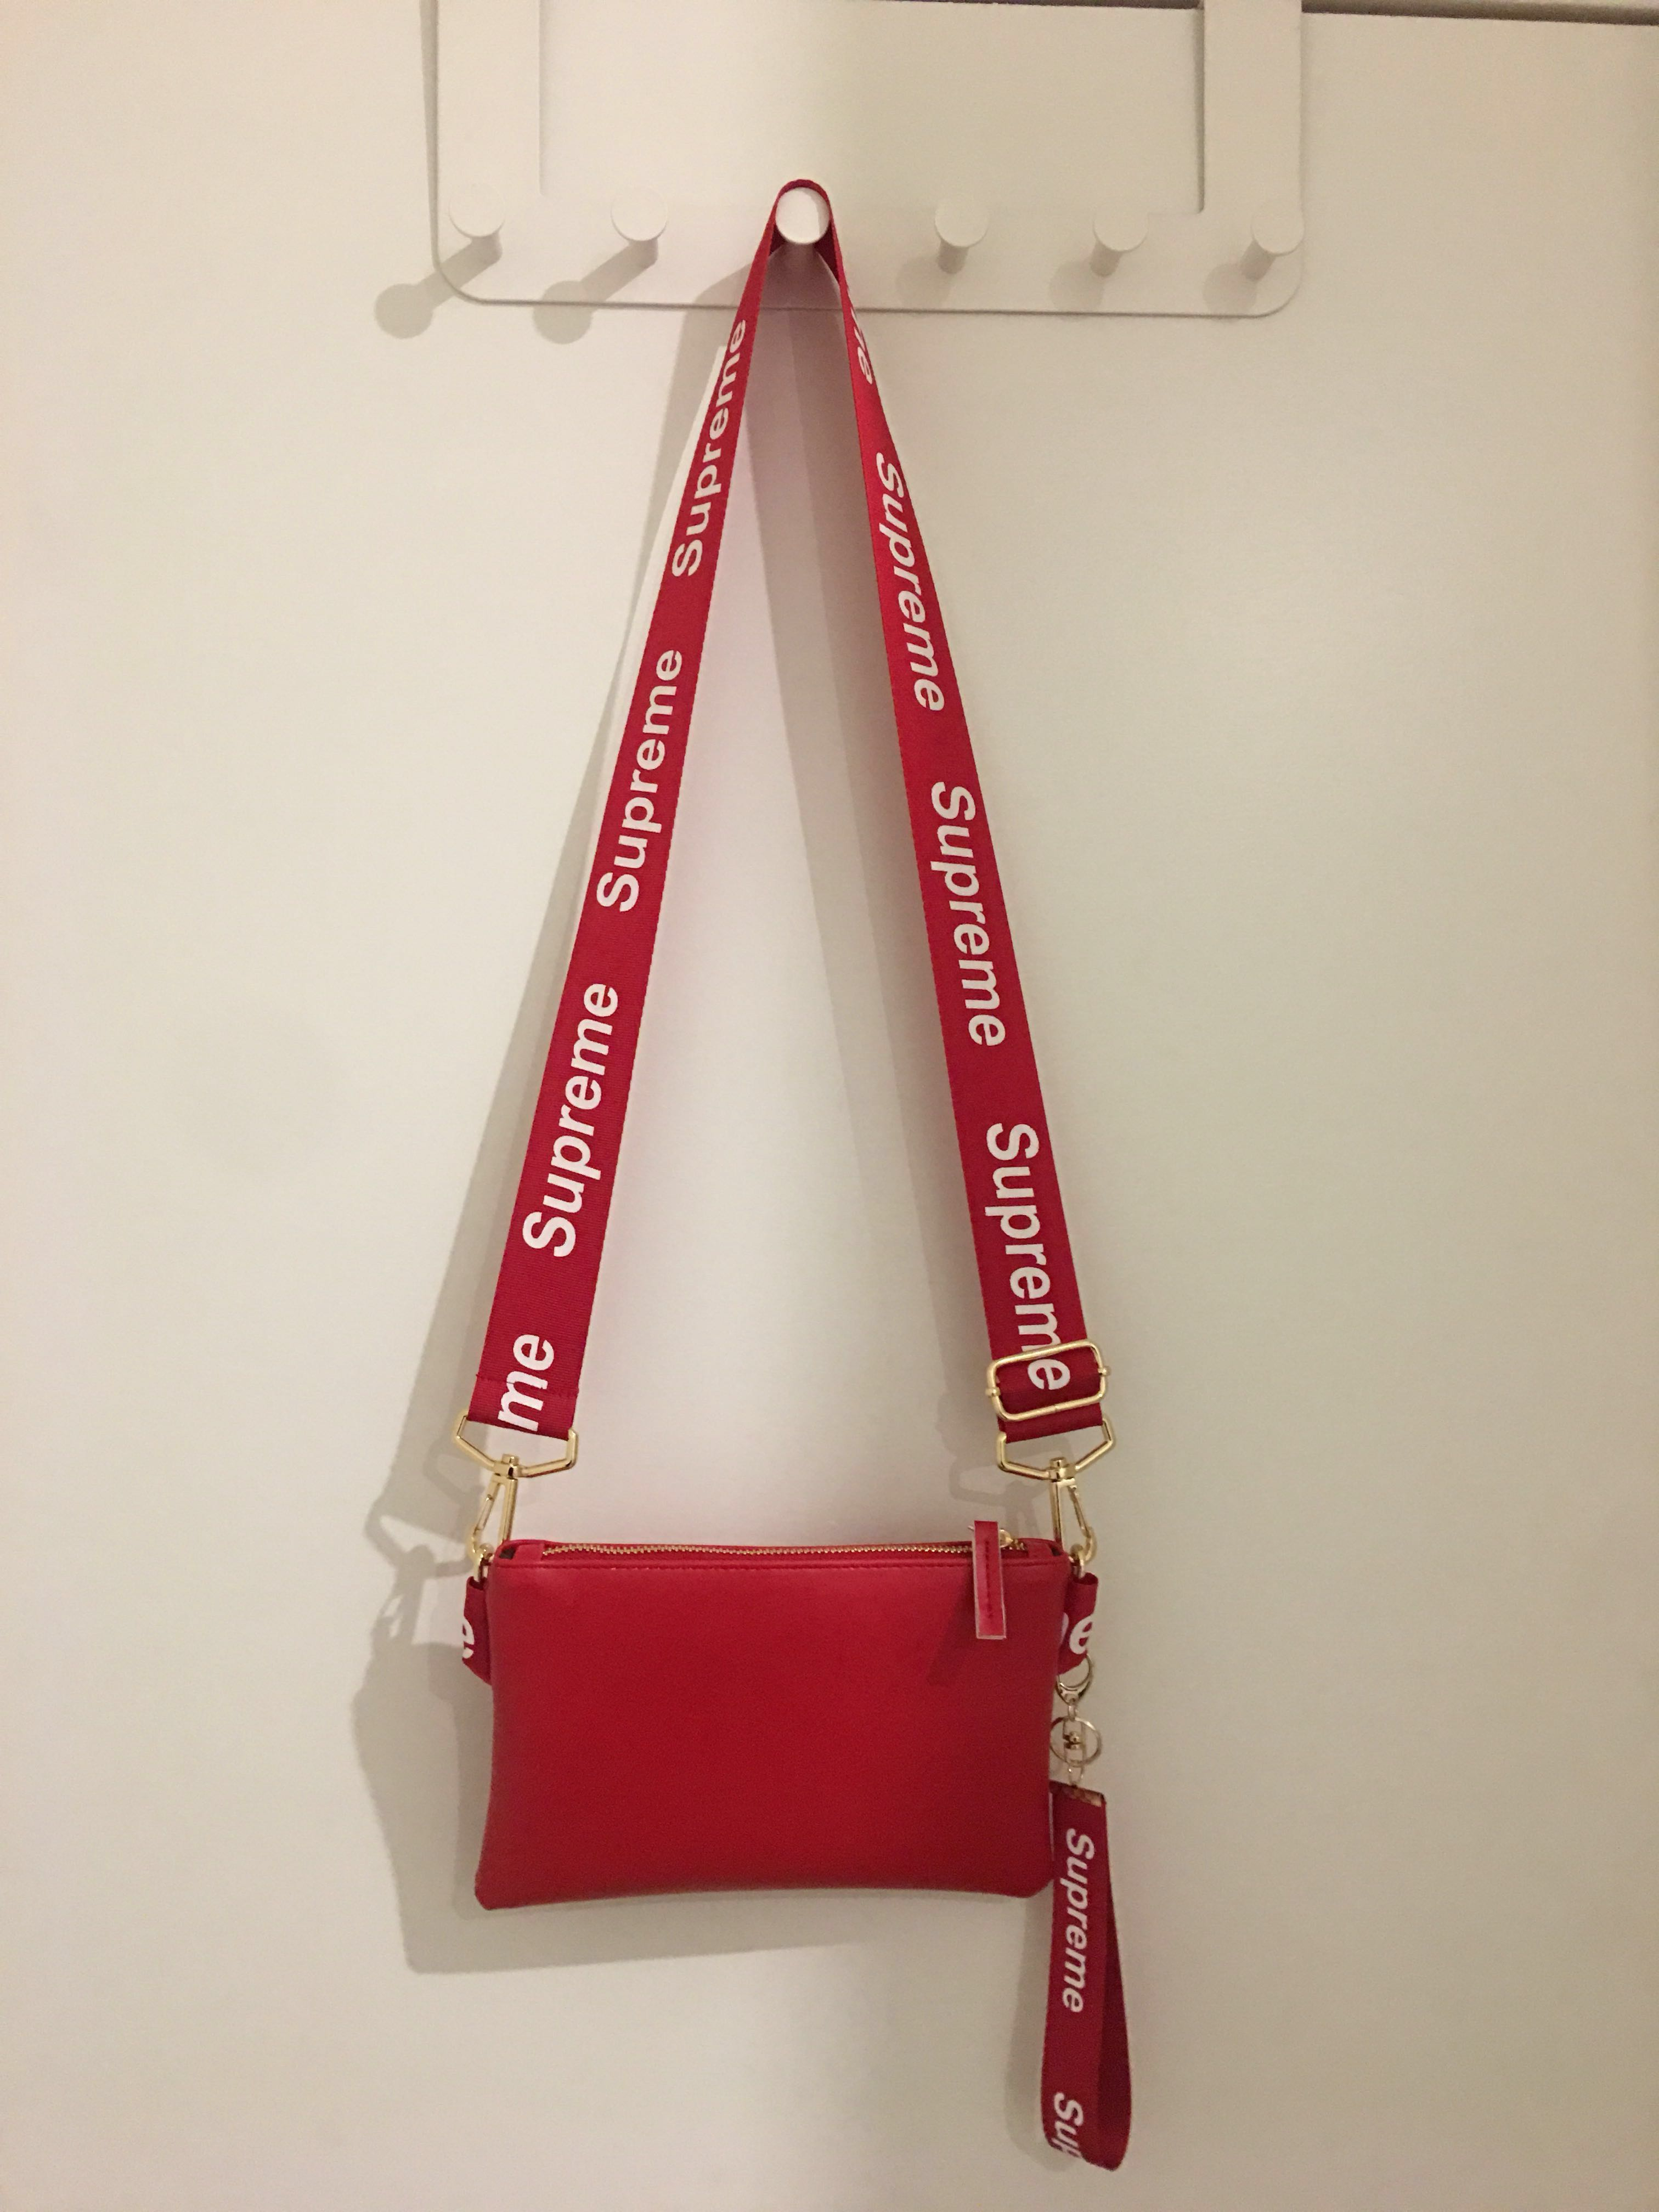 Supreme Long Strap Bag *price negotiable*